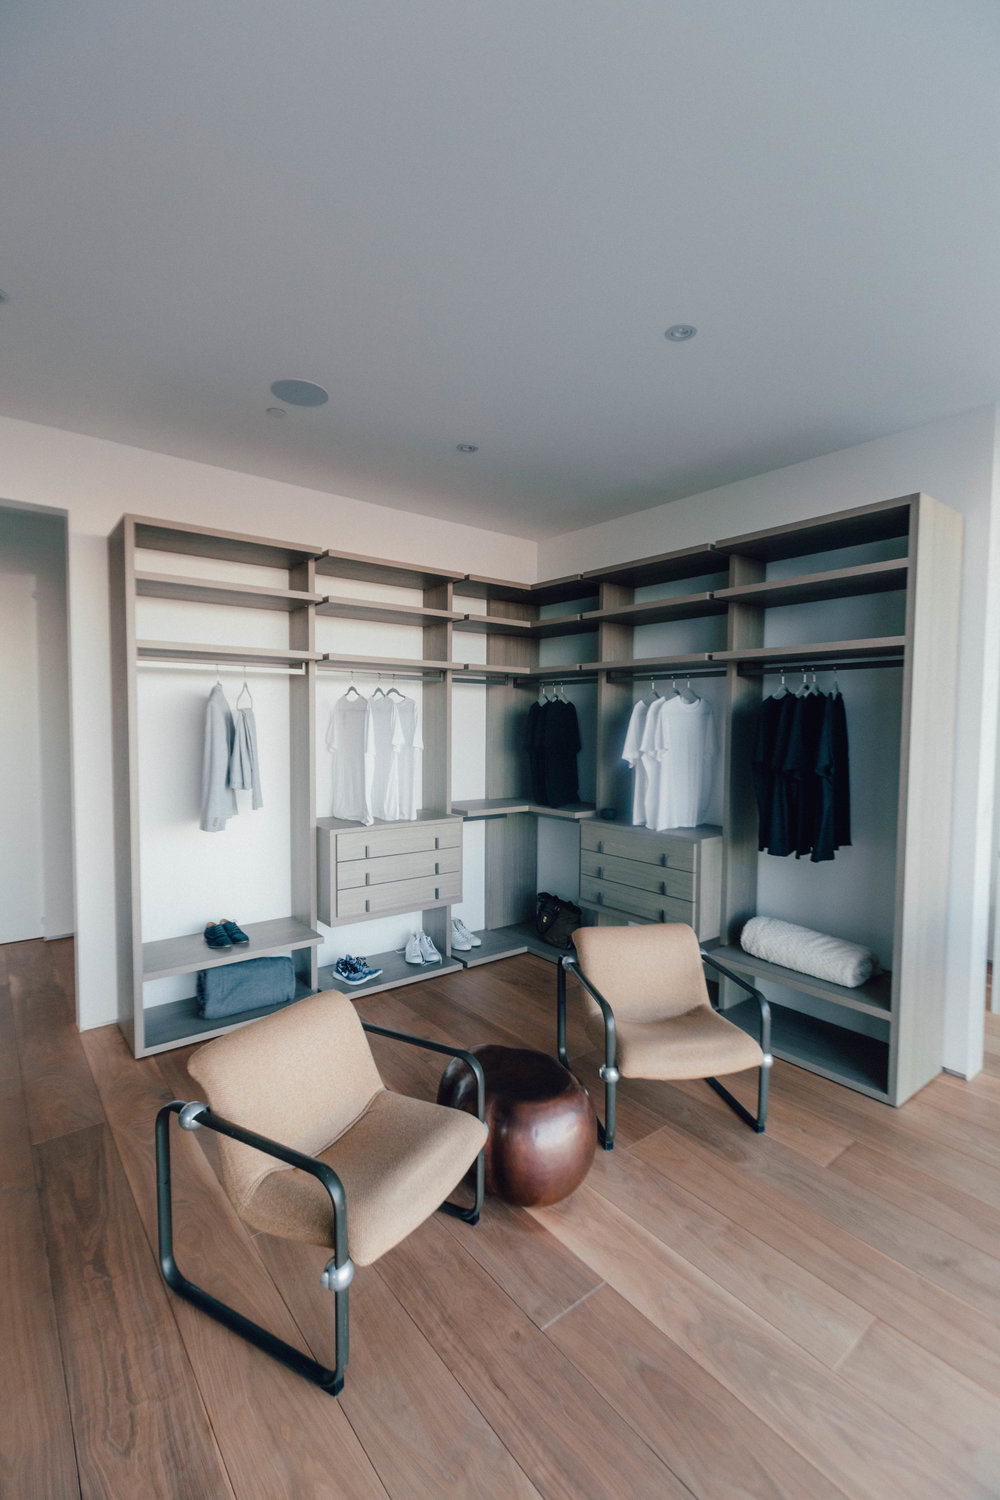 Example of custom furniture of bespoke shelving in place in an open plan scheme via eDesign online for a San Fransisco from Berlin design interior studio